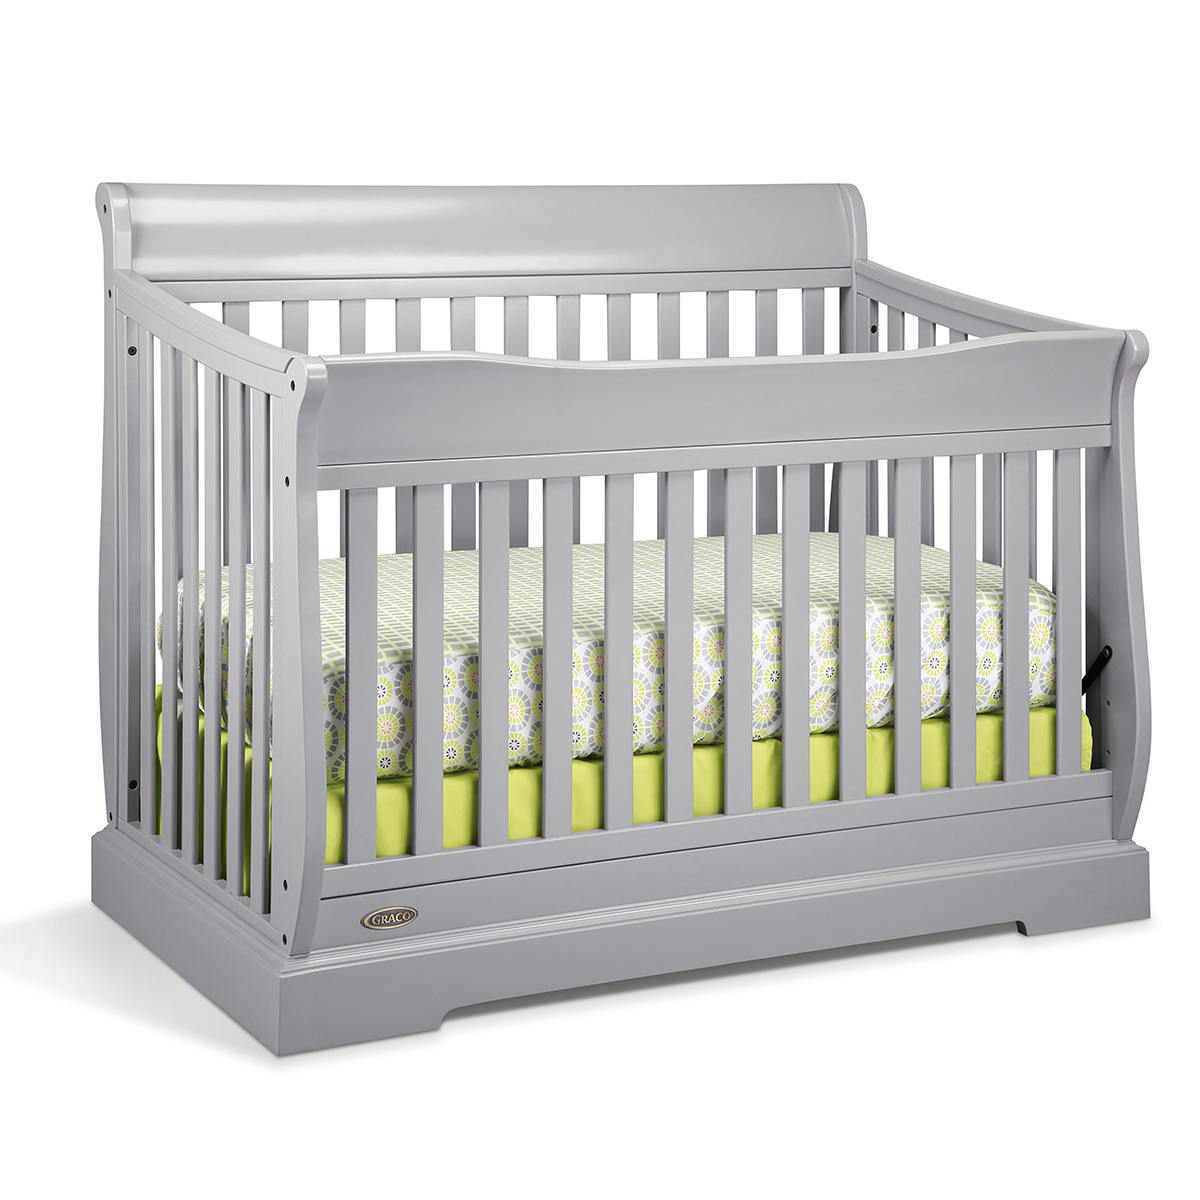 Baby cribs with matching dresser - Graco Cribs Maple Ridge 4 In 1 Convertible Crib In Pebble Gray